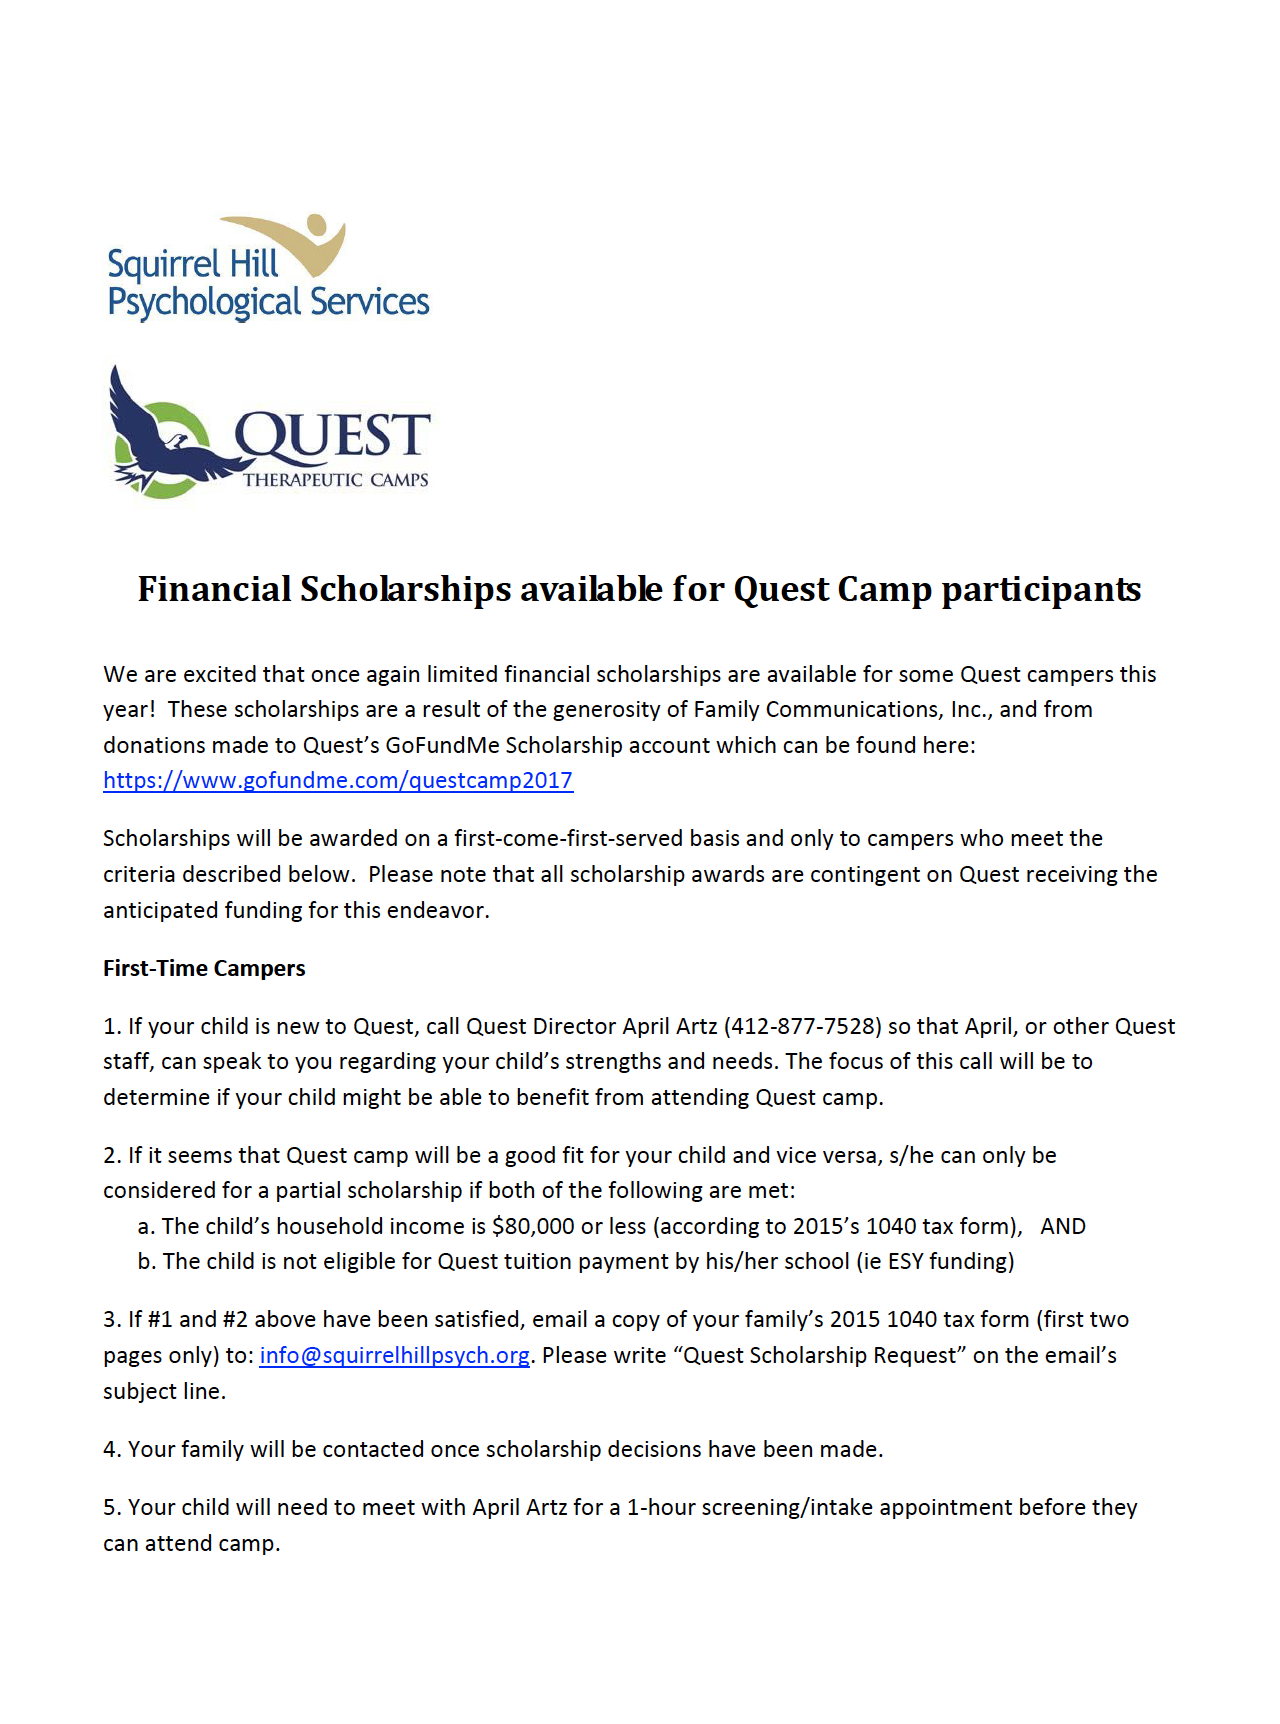 Quest Camp Scholarships 2017